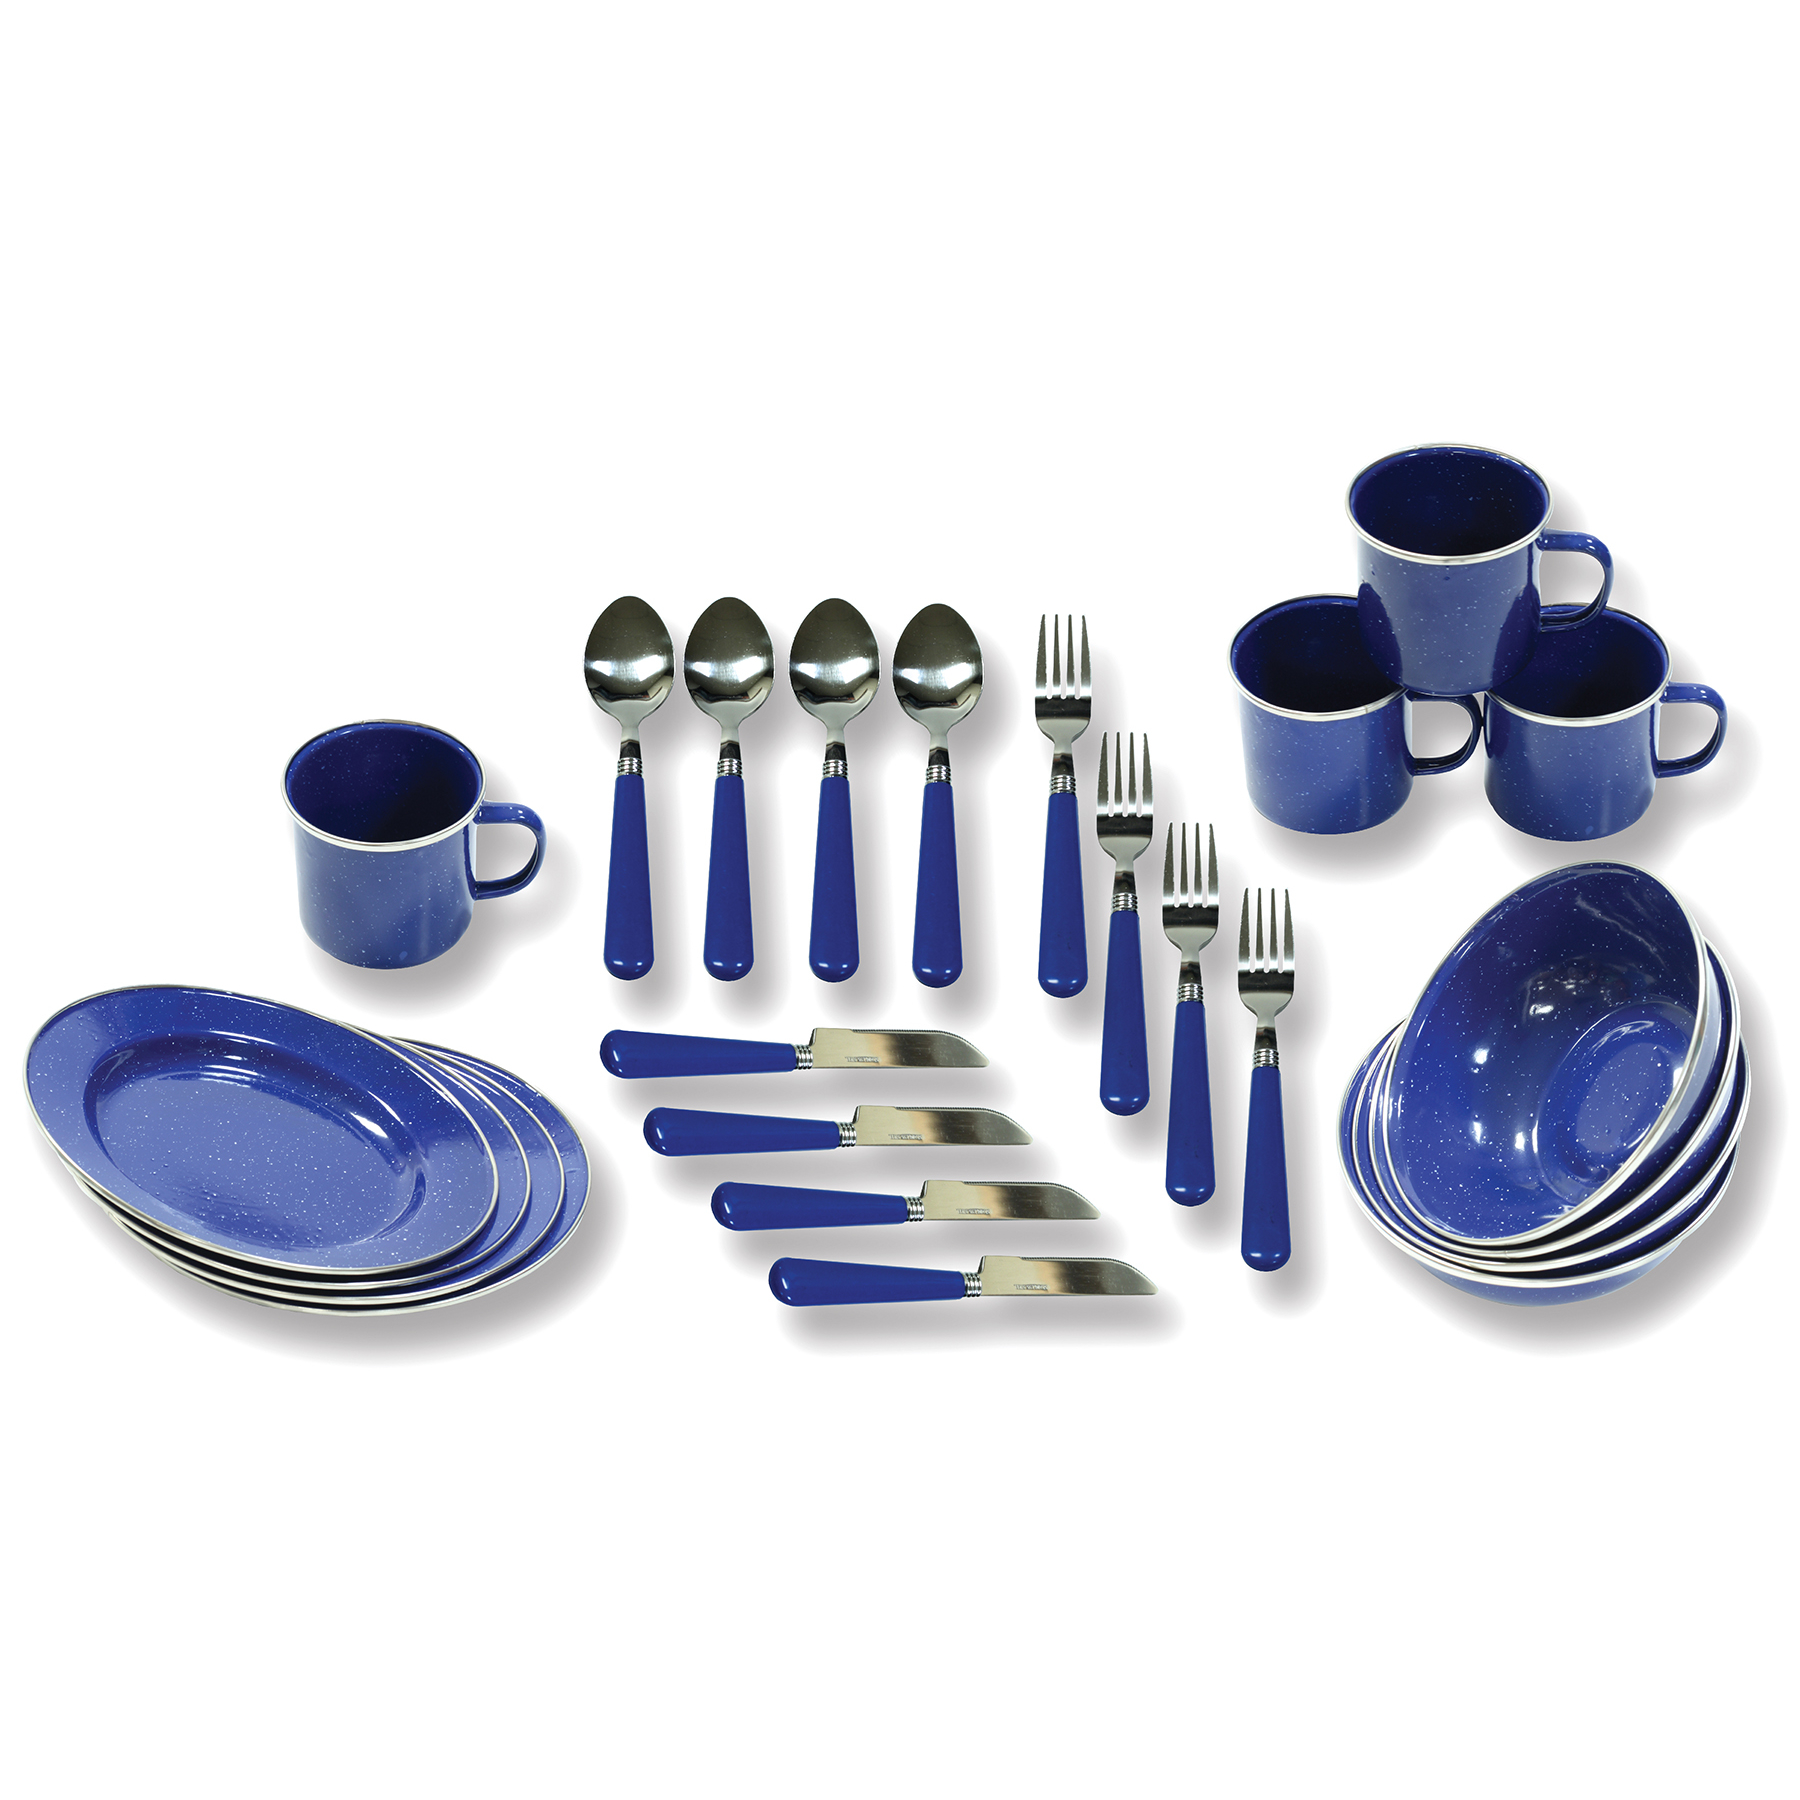 Stansport 24-Piece Enamel Camping Tableware Set by Stansport Outdoor